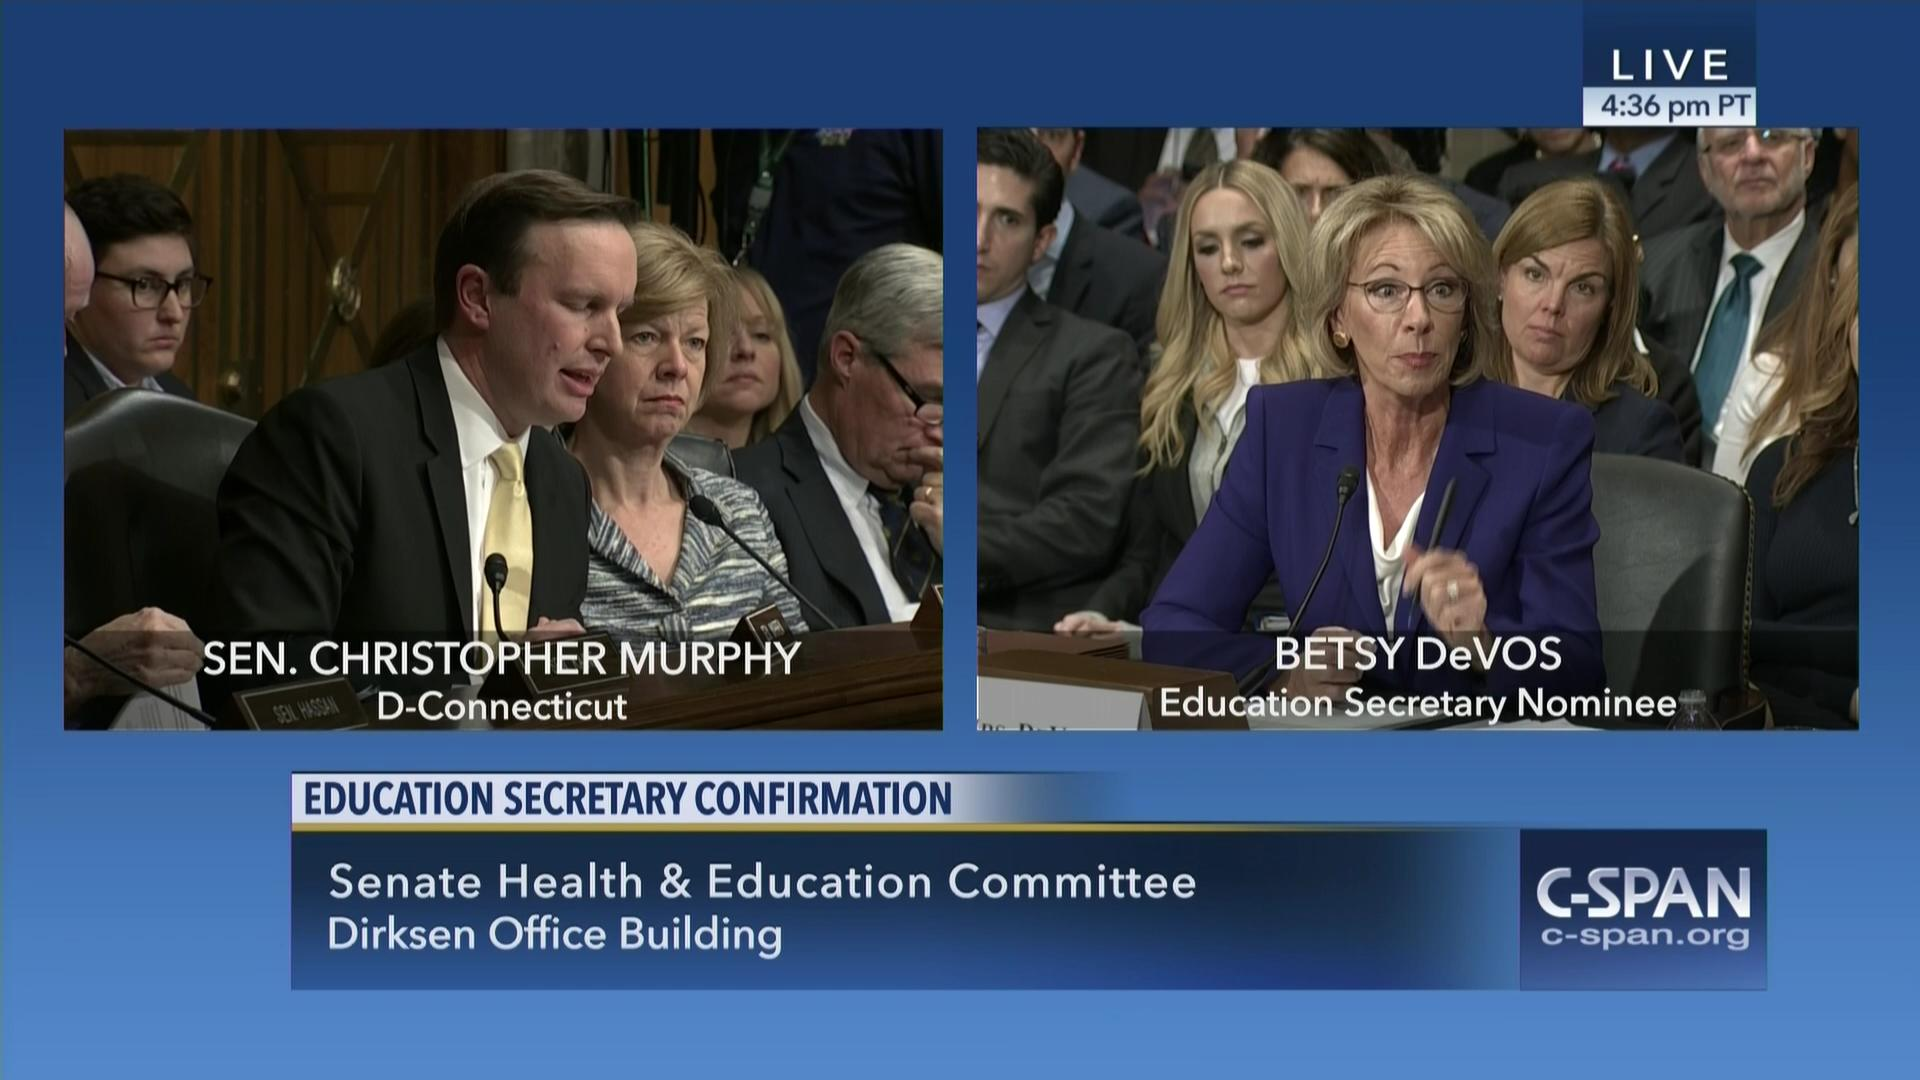 Betsy Devos Nomination Chilling >> Exchange Between Sen Chris Murphy D Ct And Betsy Devos On Guns In Schools